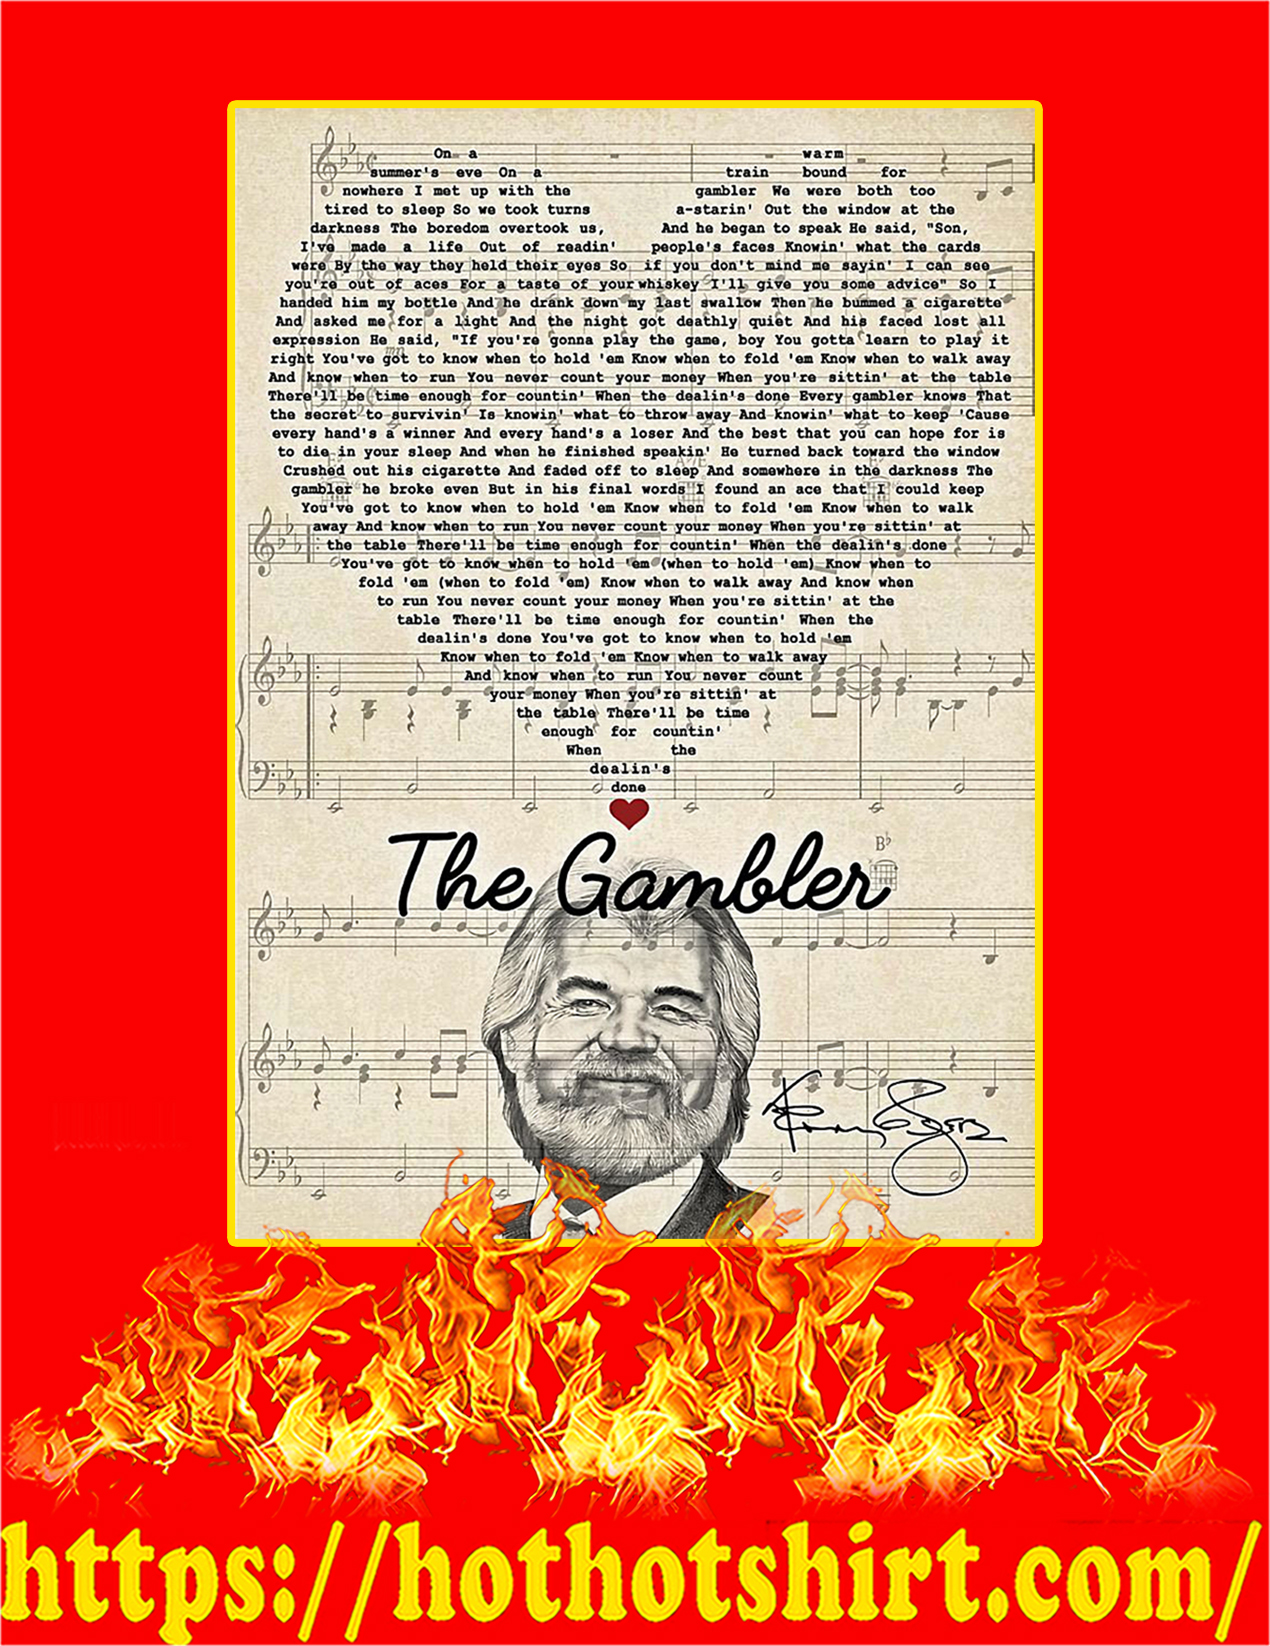 The Gambler Kenny Rogers Signature Poster - A3